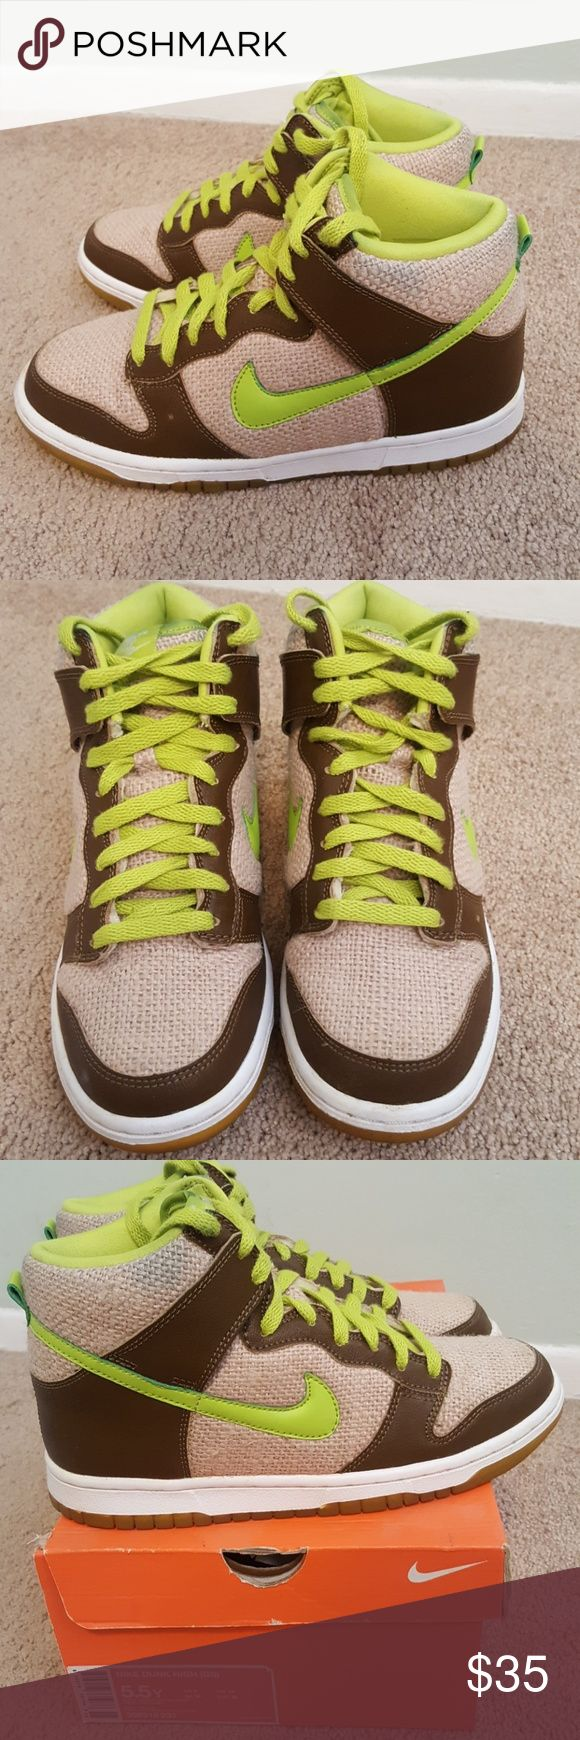 """Nike Dunk high Known as the """"Shreks"""". In great condition, they have only been worn a few times. Nike Shoes Sneakers"""